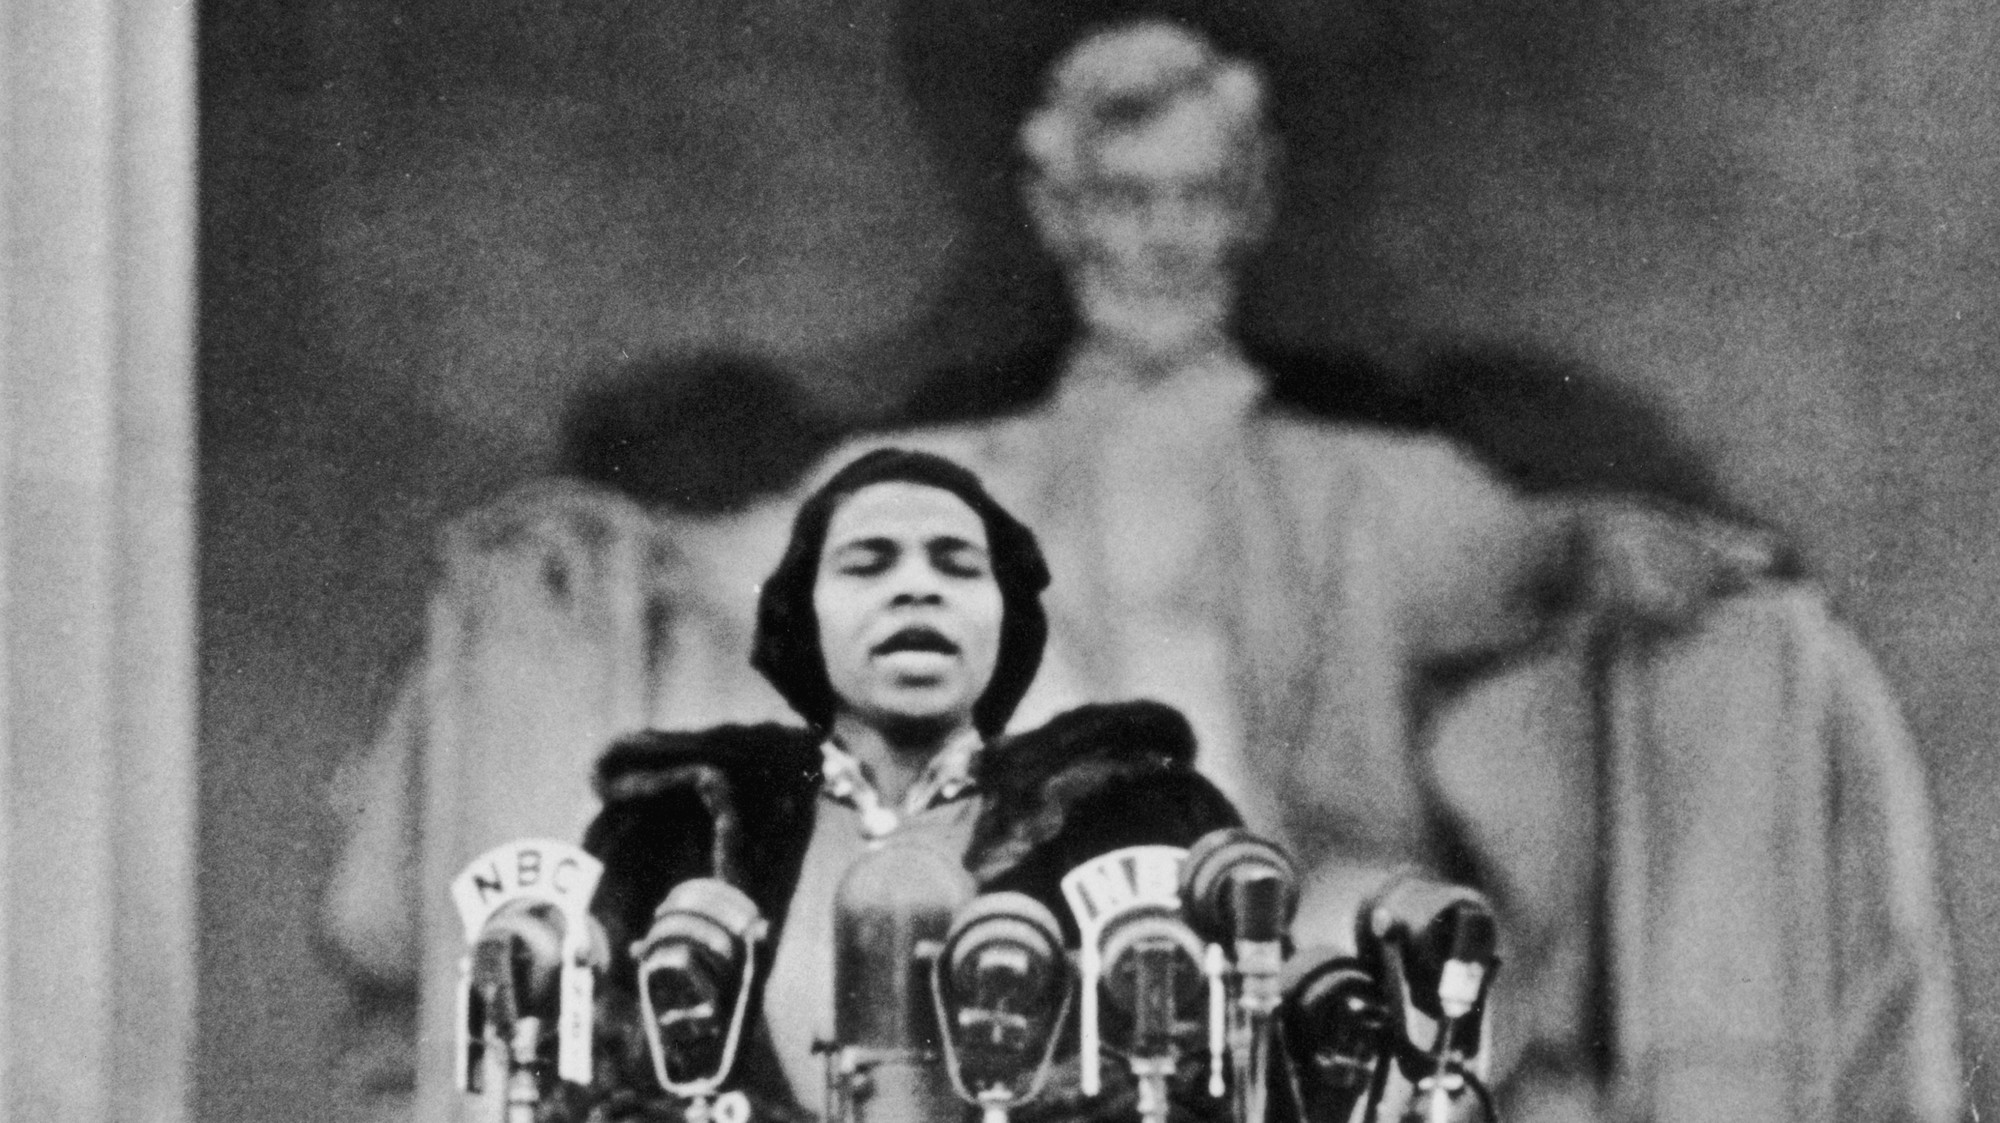 The Groundbreaking Black Singer Whose Voice Inspired Martin Luther